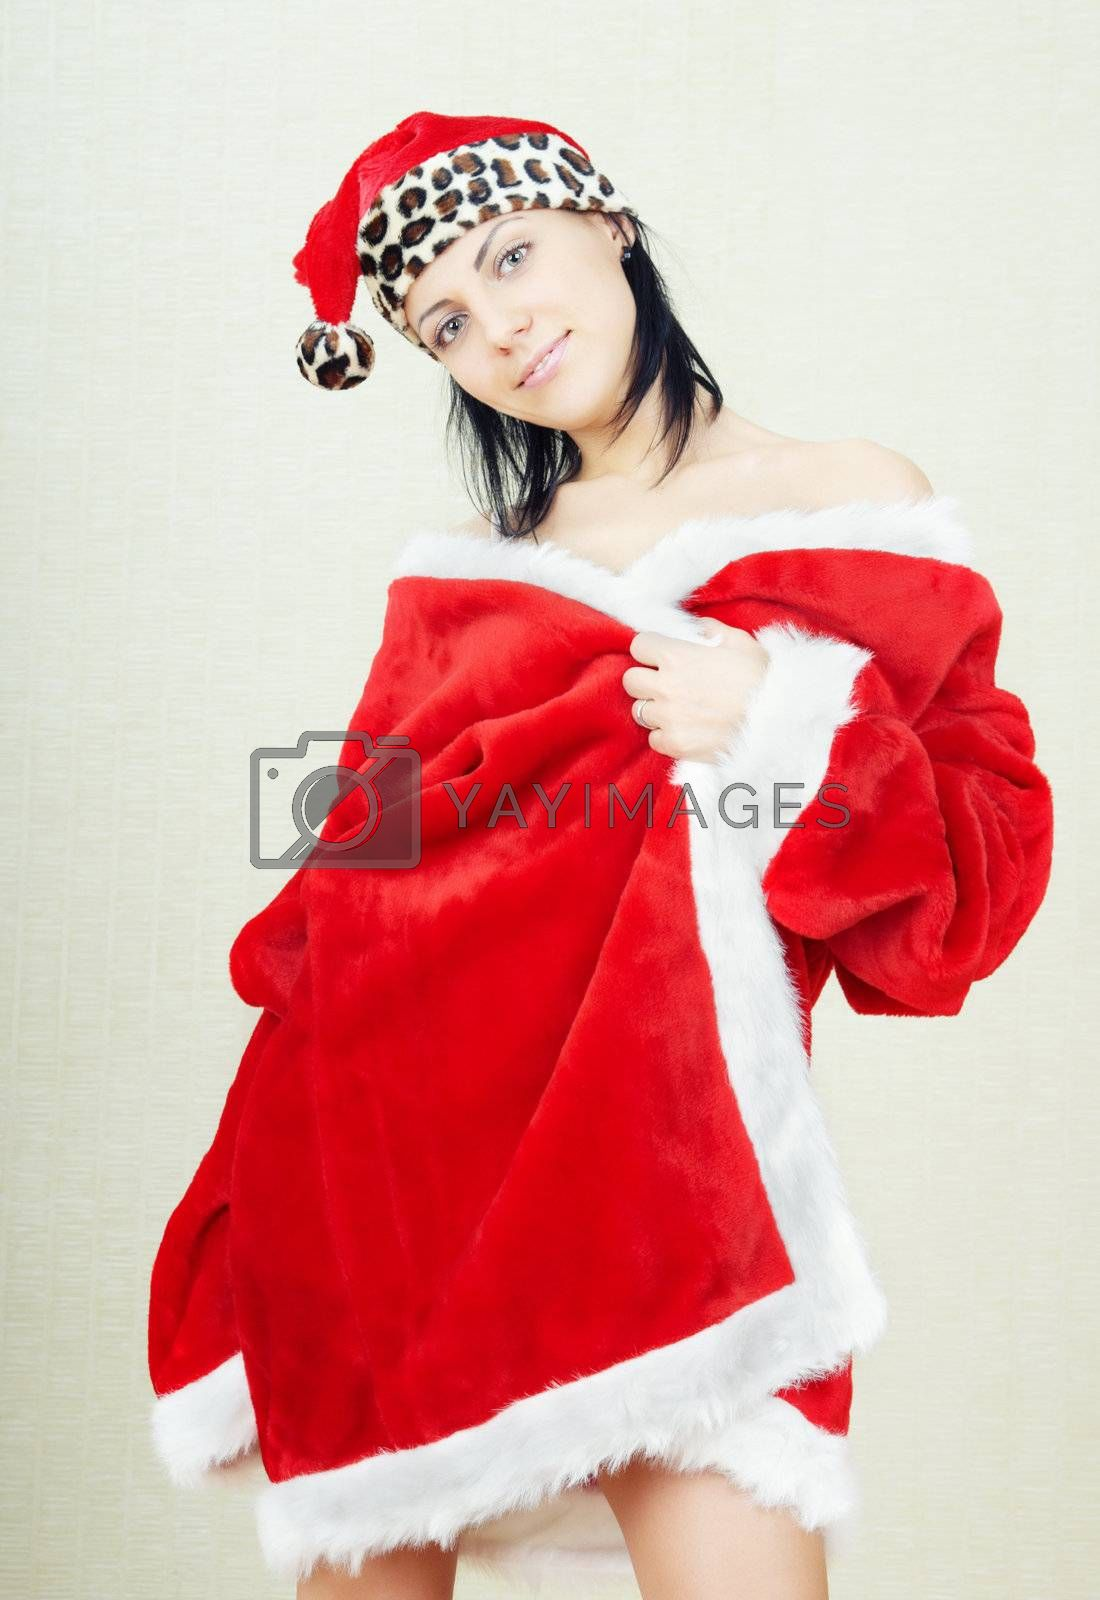 Smiling brunette lady indoors in the red furry Santa Claus dress and hat